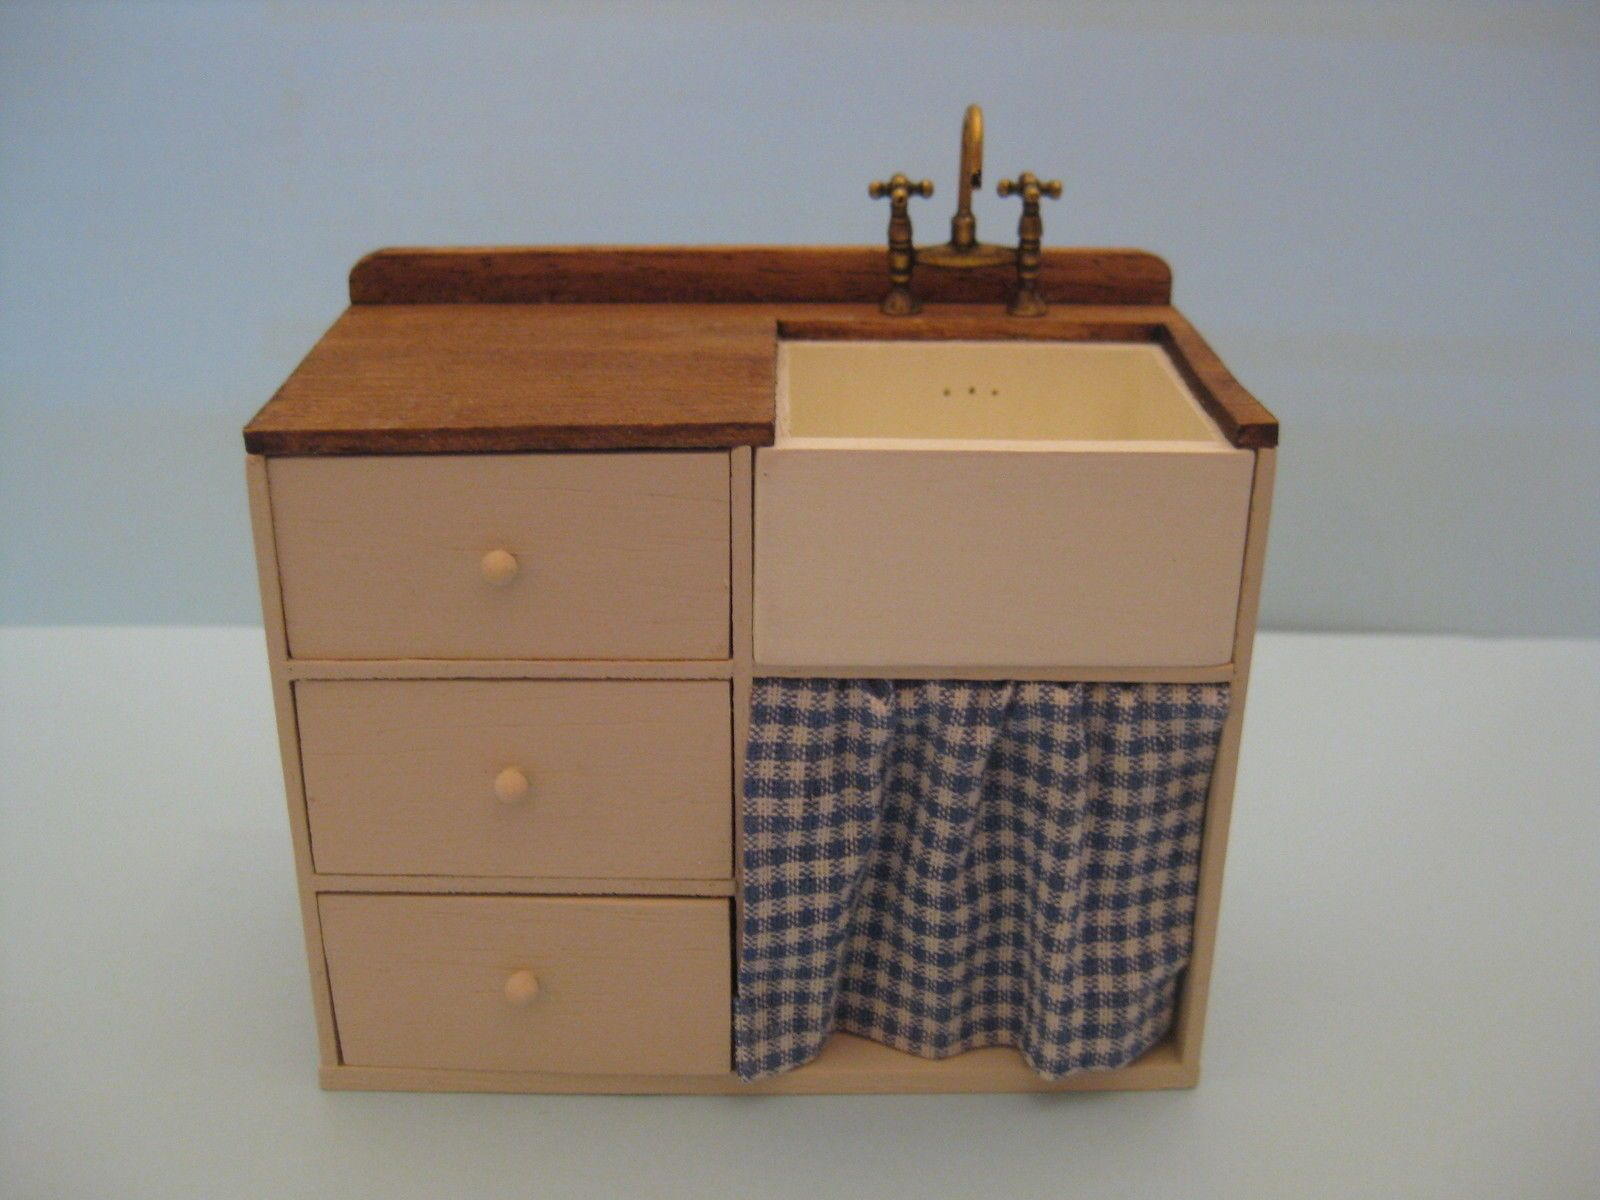 12th scale dolls house furniture kitchen sink unit with brass 12th scale dolls house furniture kitchen sink unit with brass mixer tap ebay workwithnaturefo